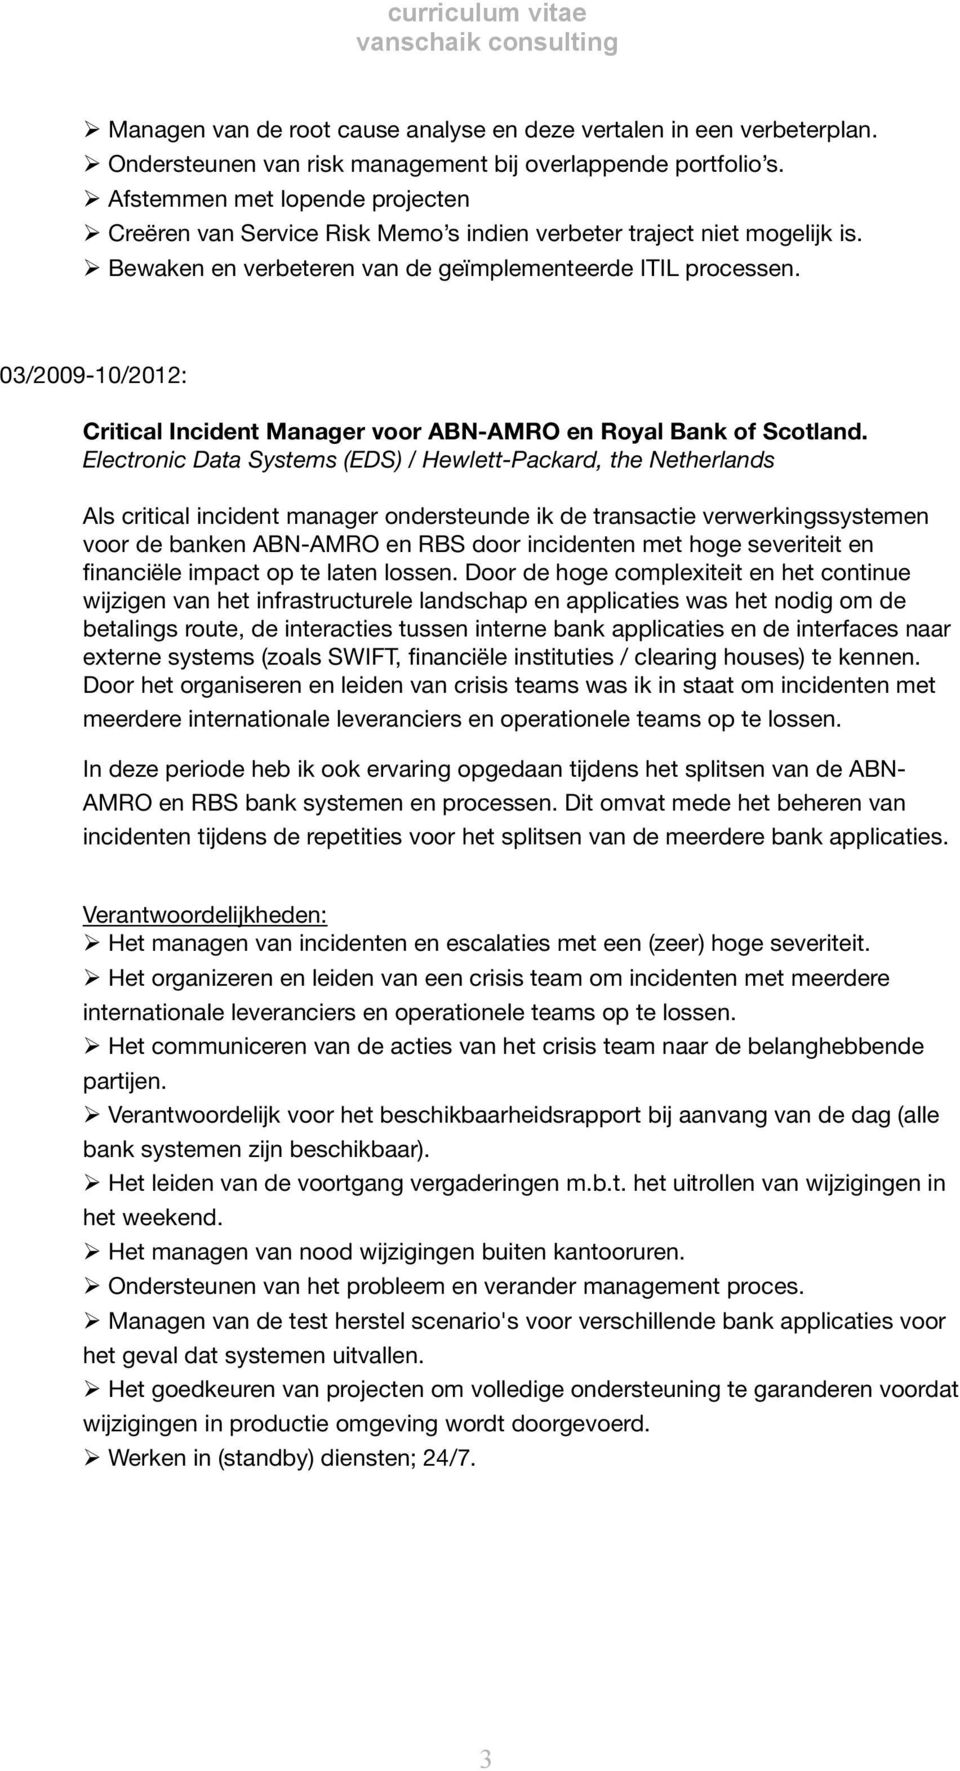 03/2009-10/2012: Critical Incident Manager voor ABN-AMRO en Royal Bank of Scotland.